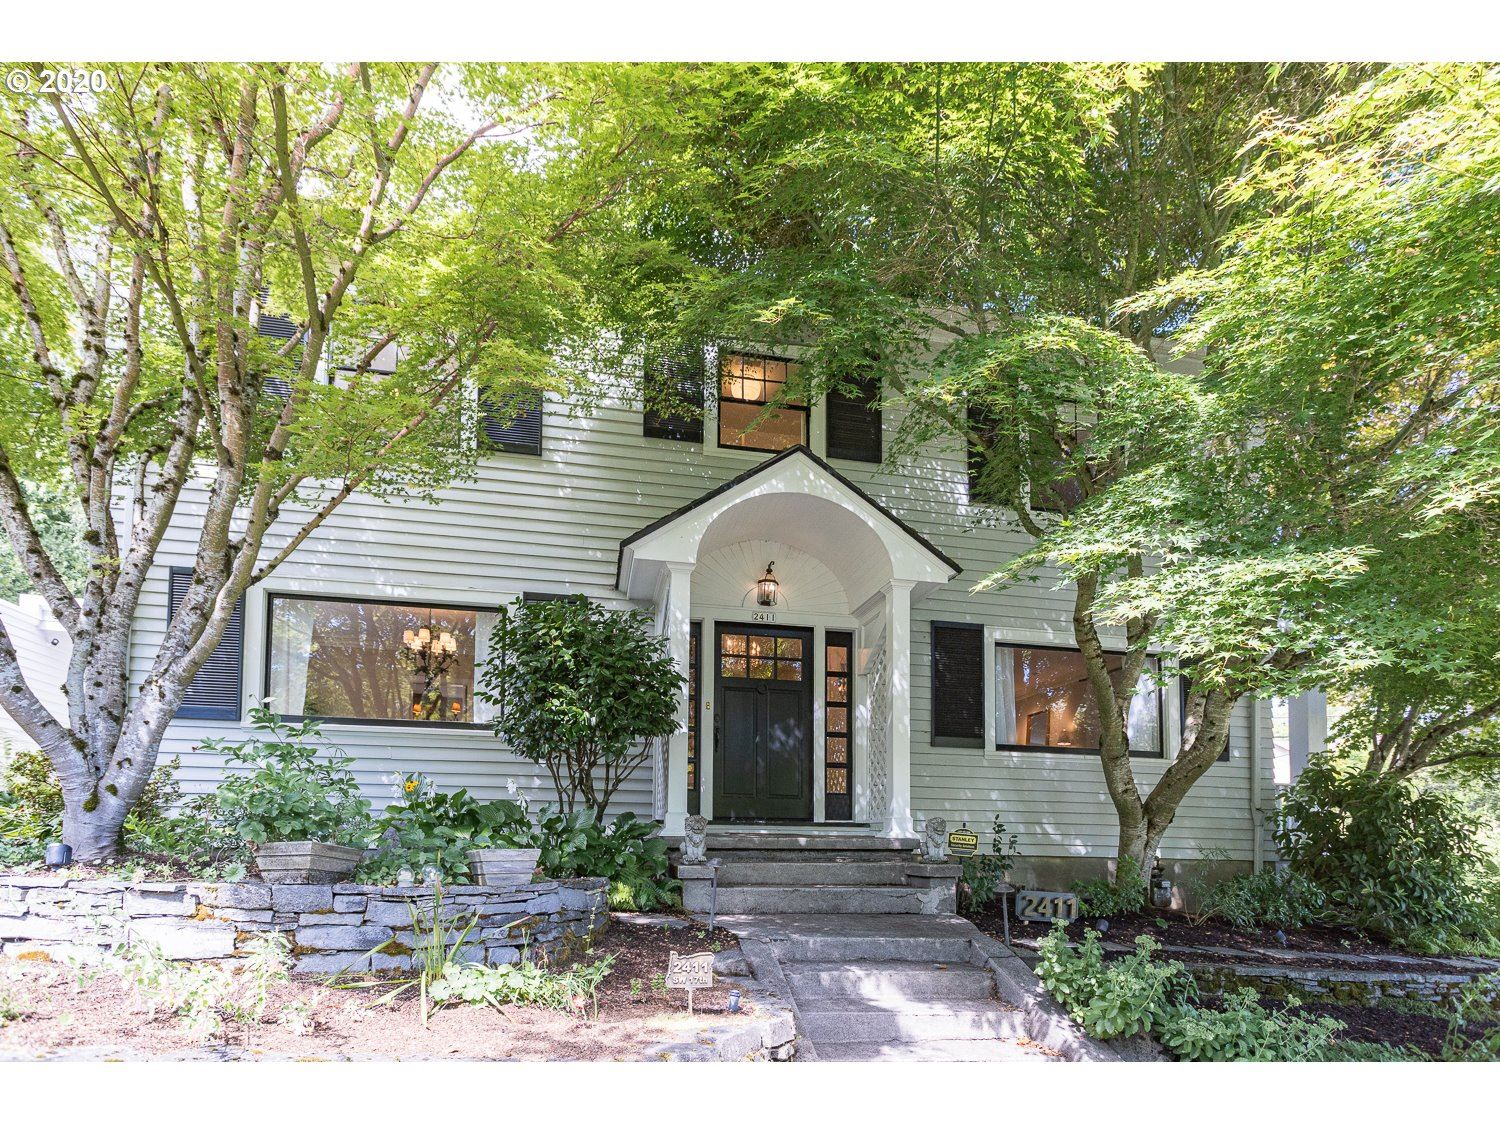 2411 SW 17TH AVE, Portland, OR 97201 - MLS#: 20302634